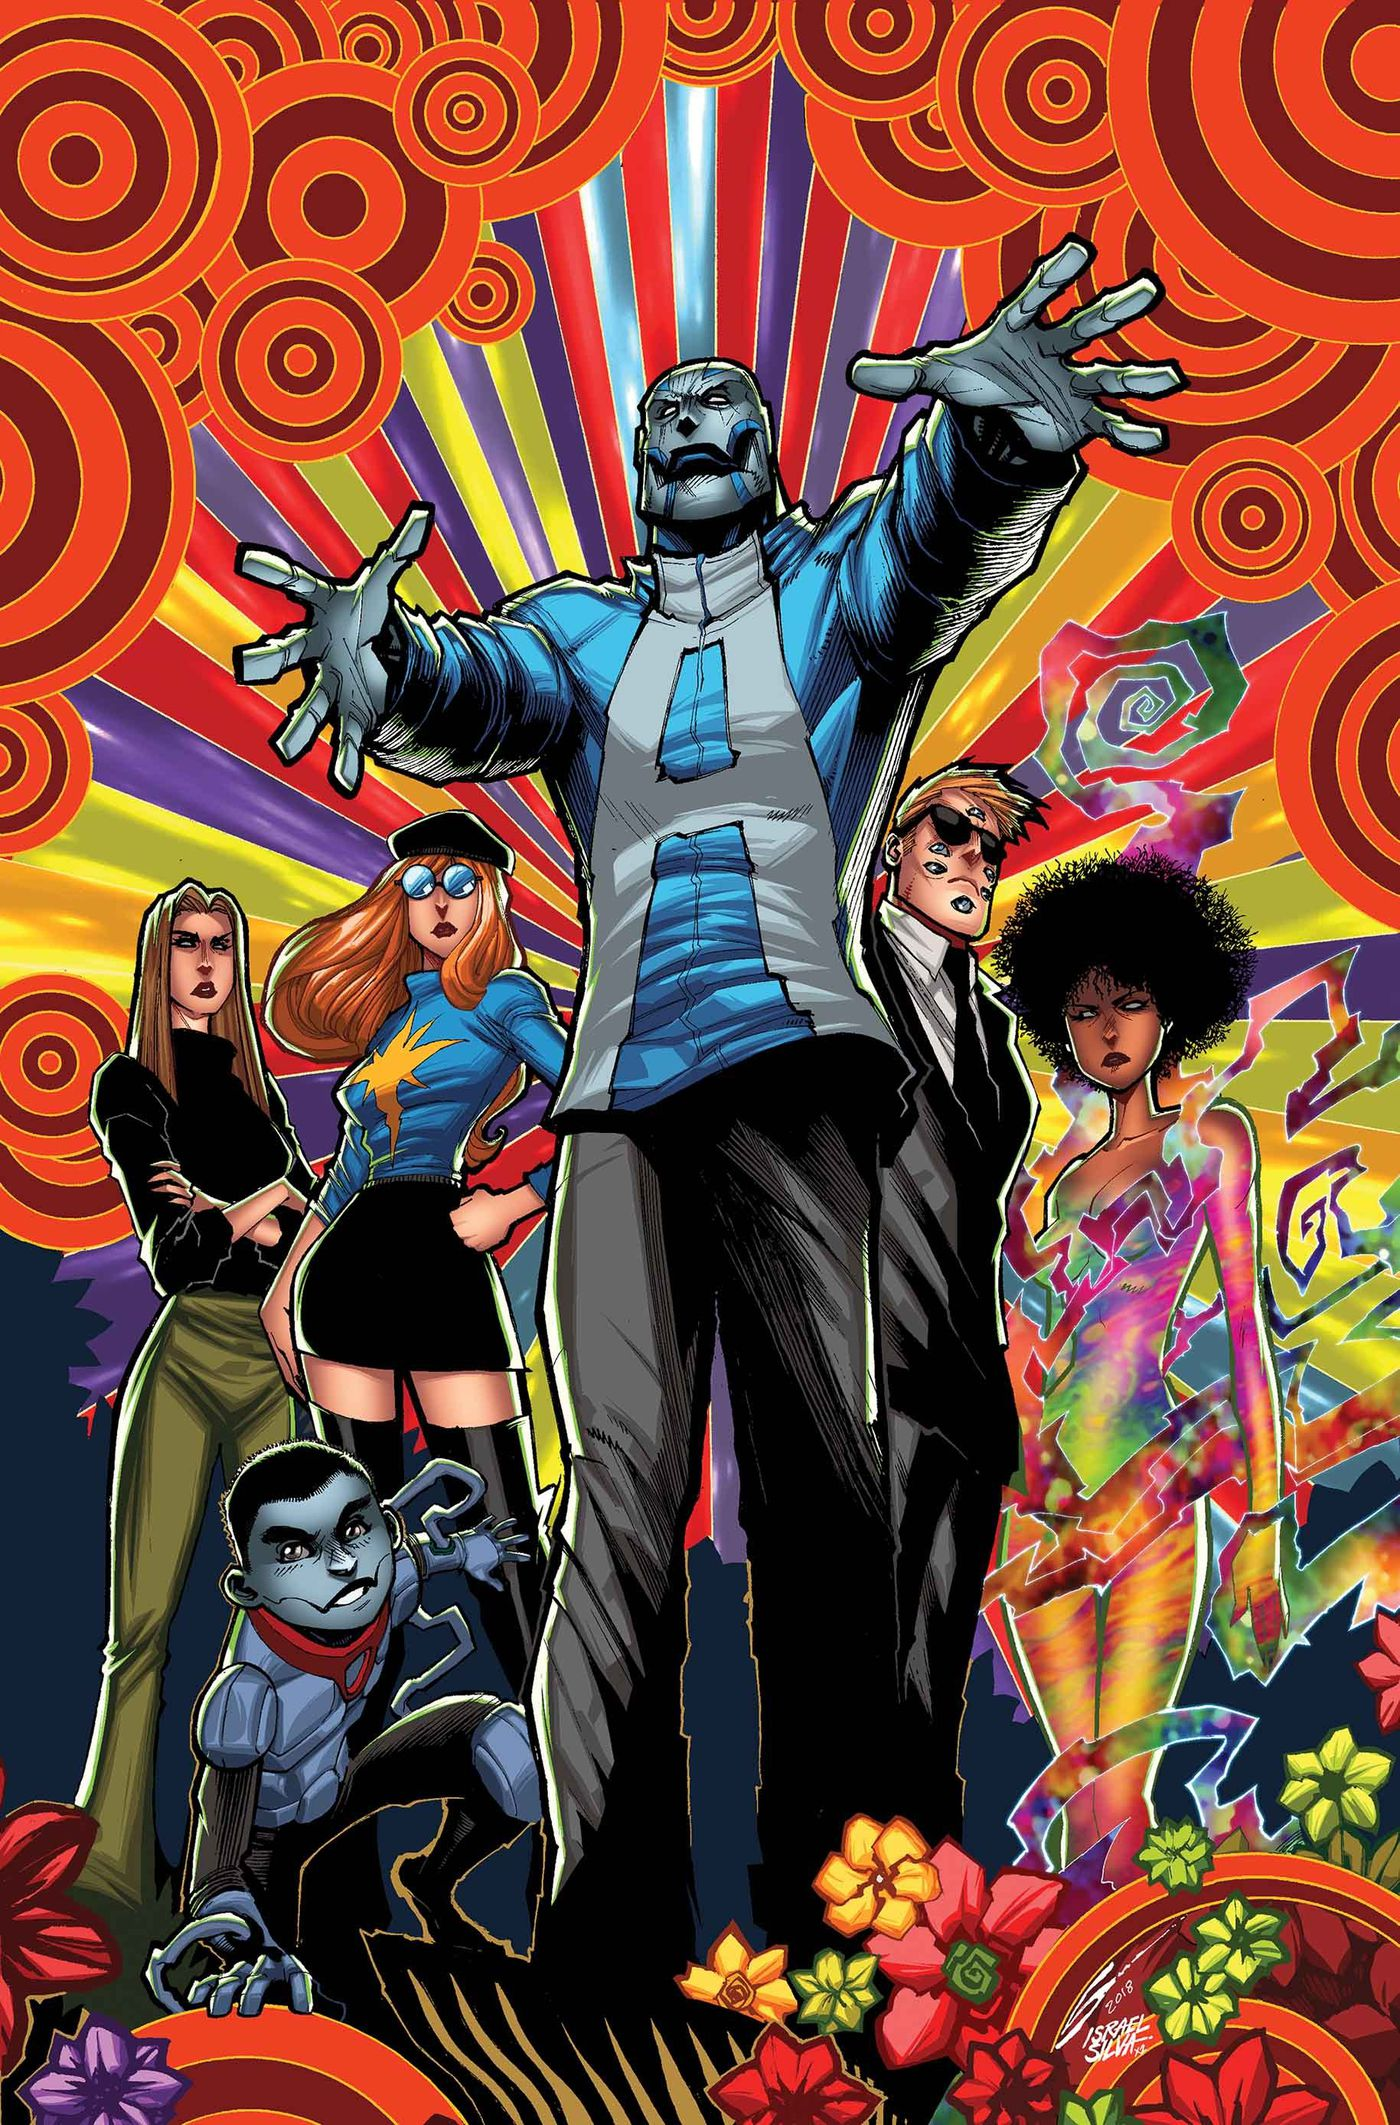 Age of X-Man: Marvel's epic event inspired by Age of